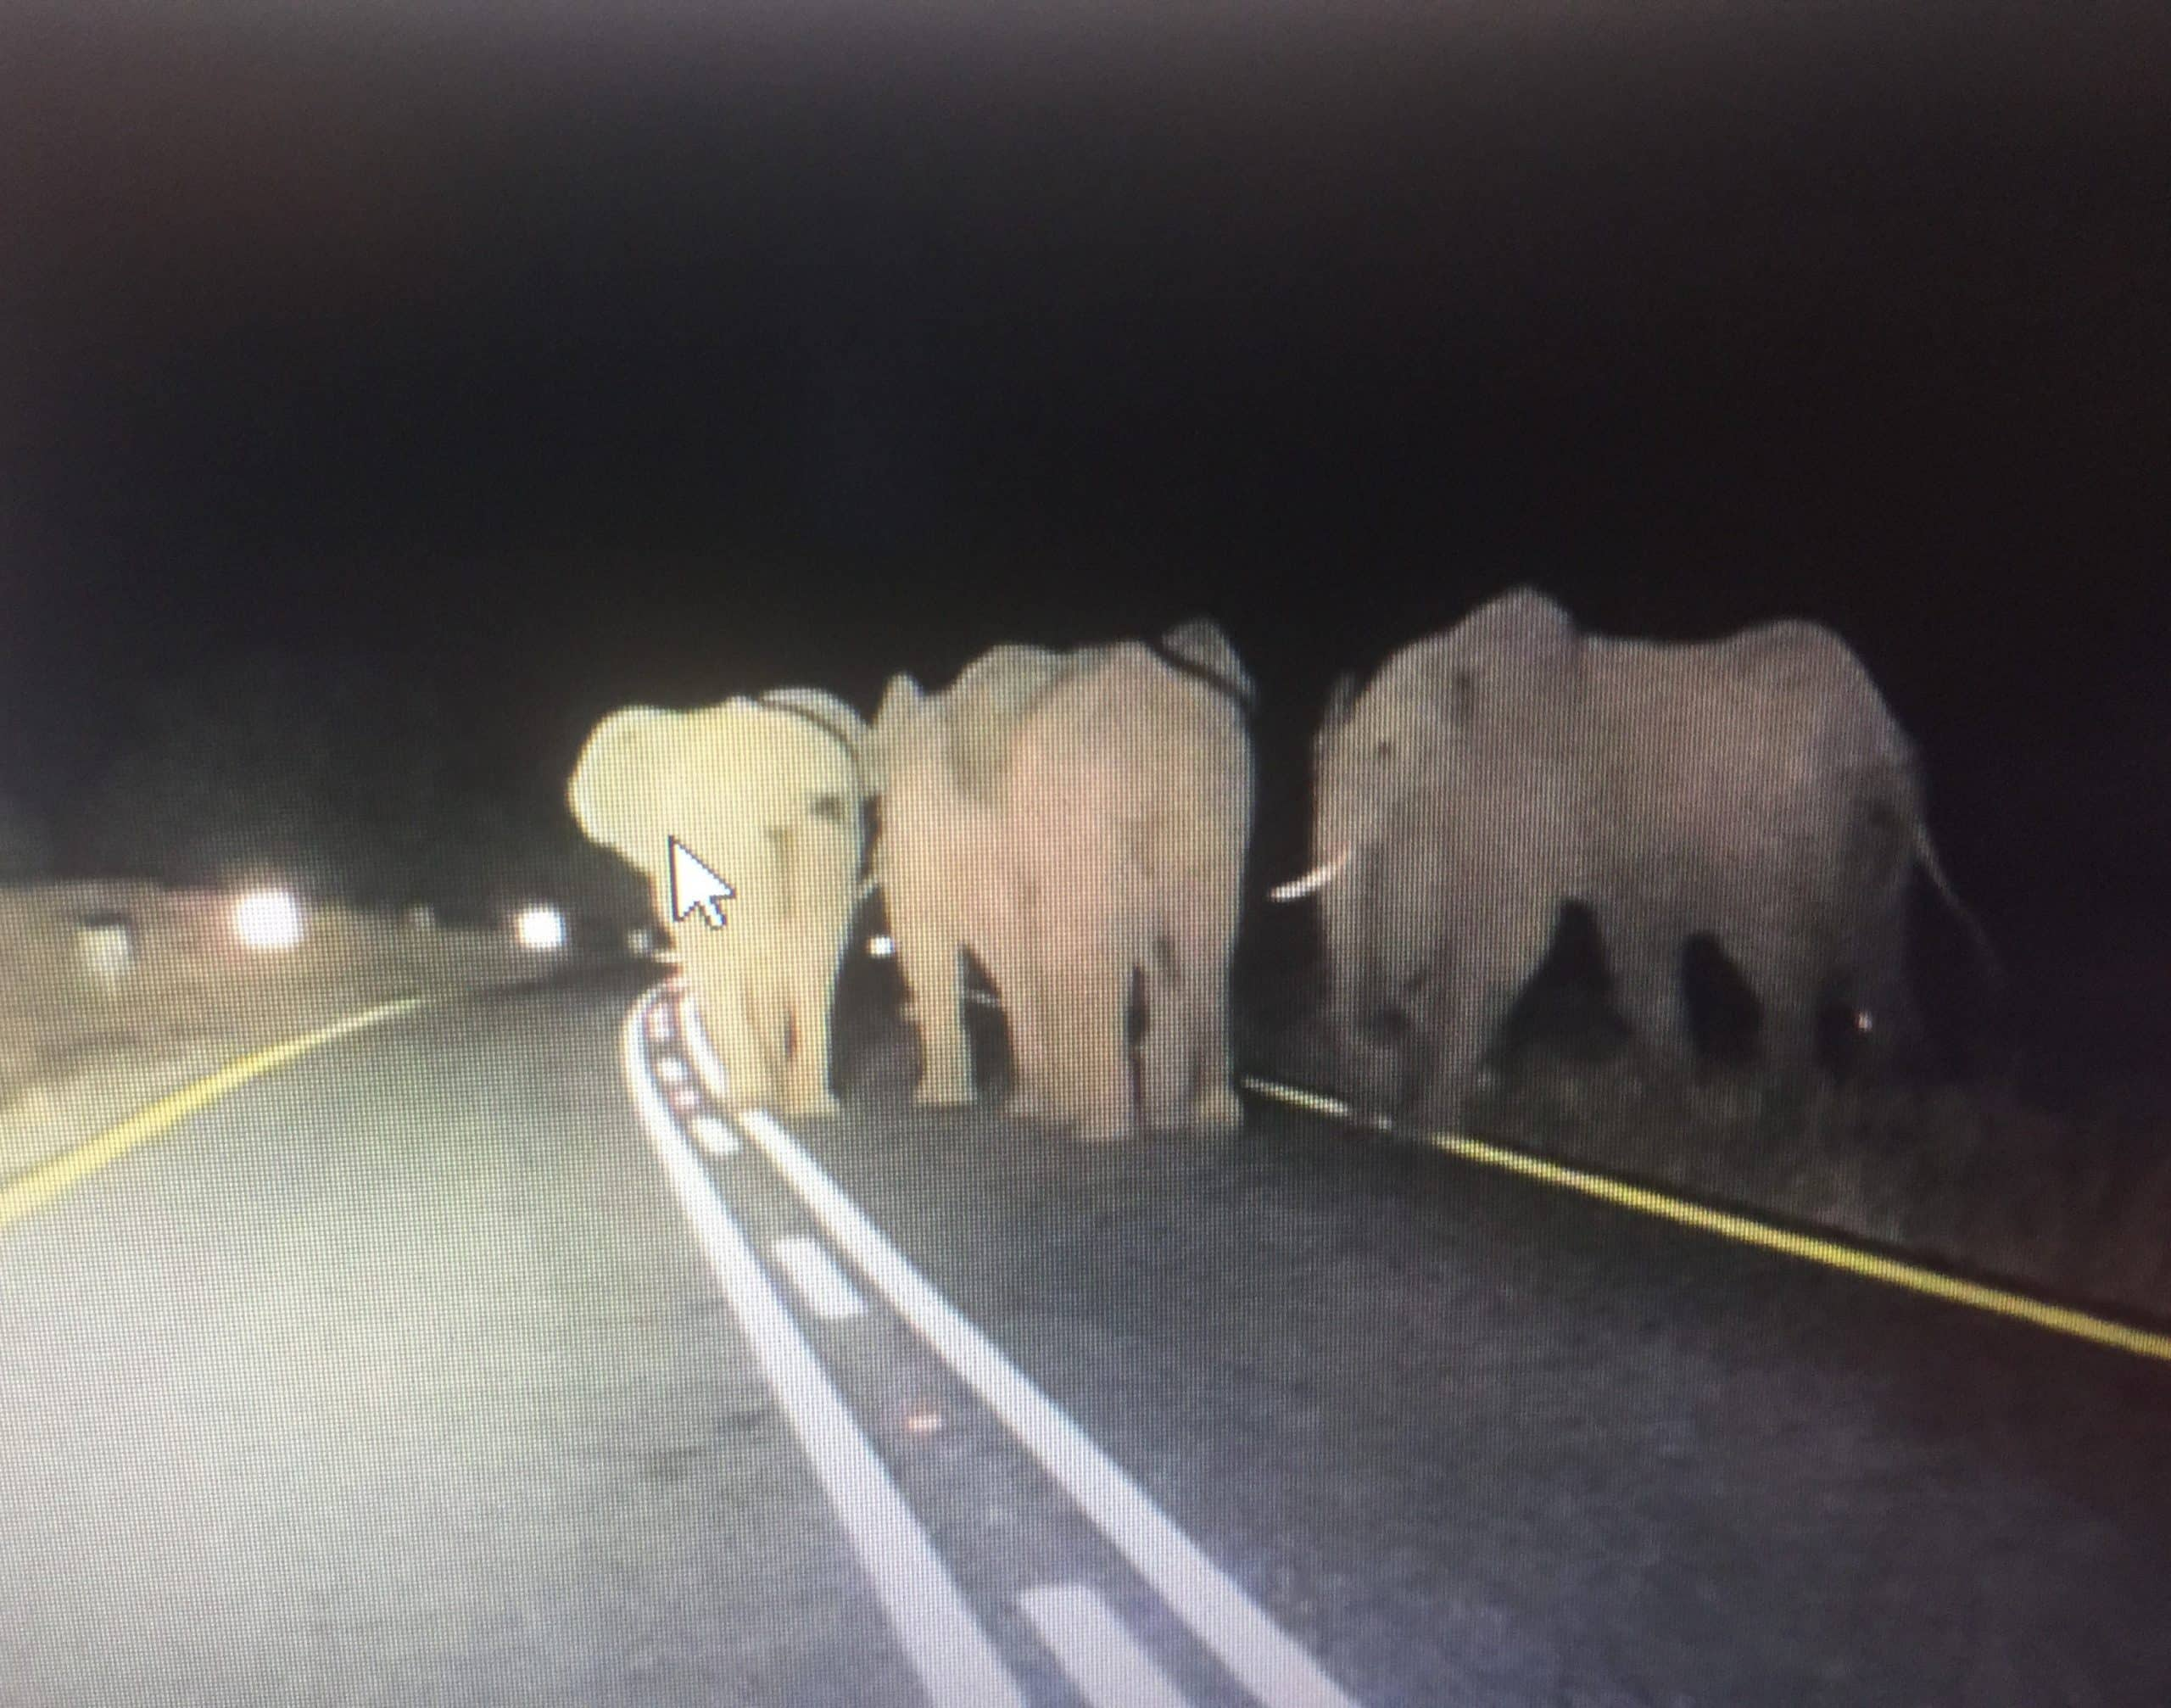 Elephants on R40 main road near Balule at night